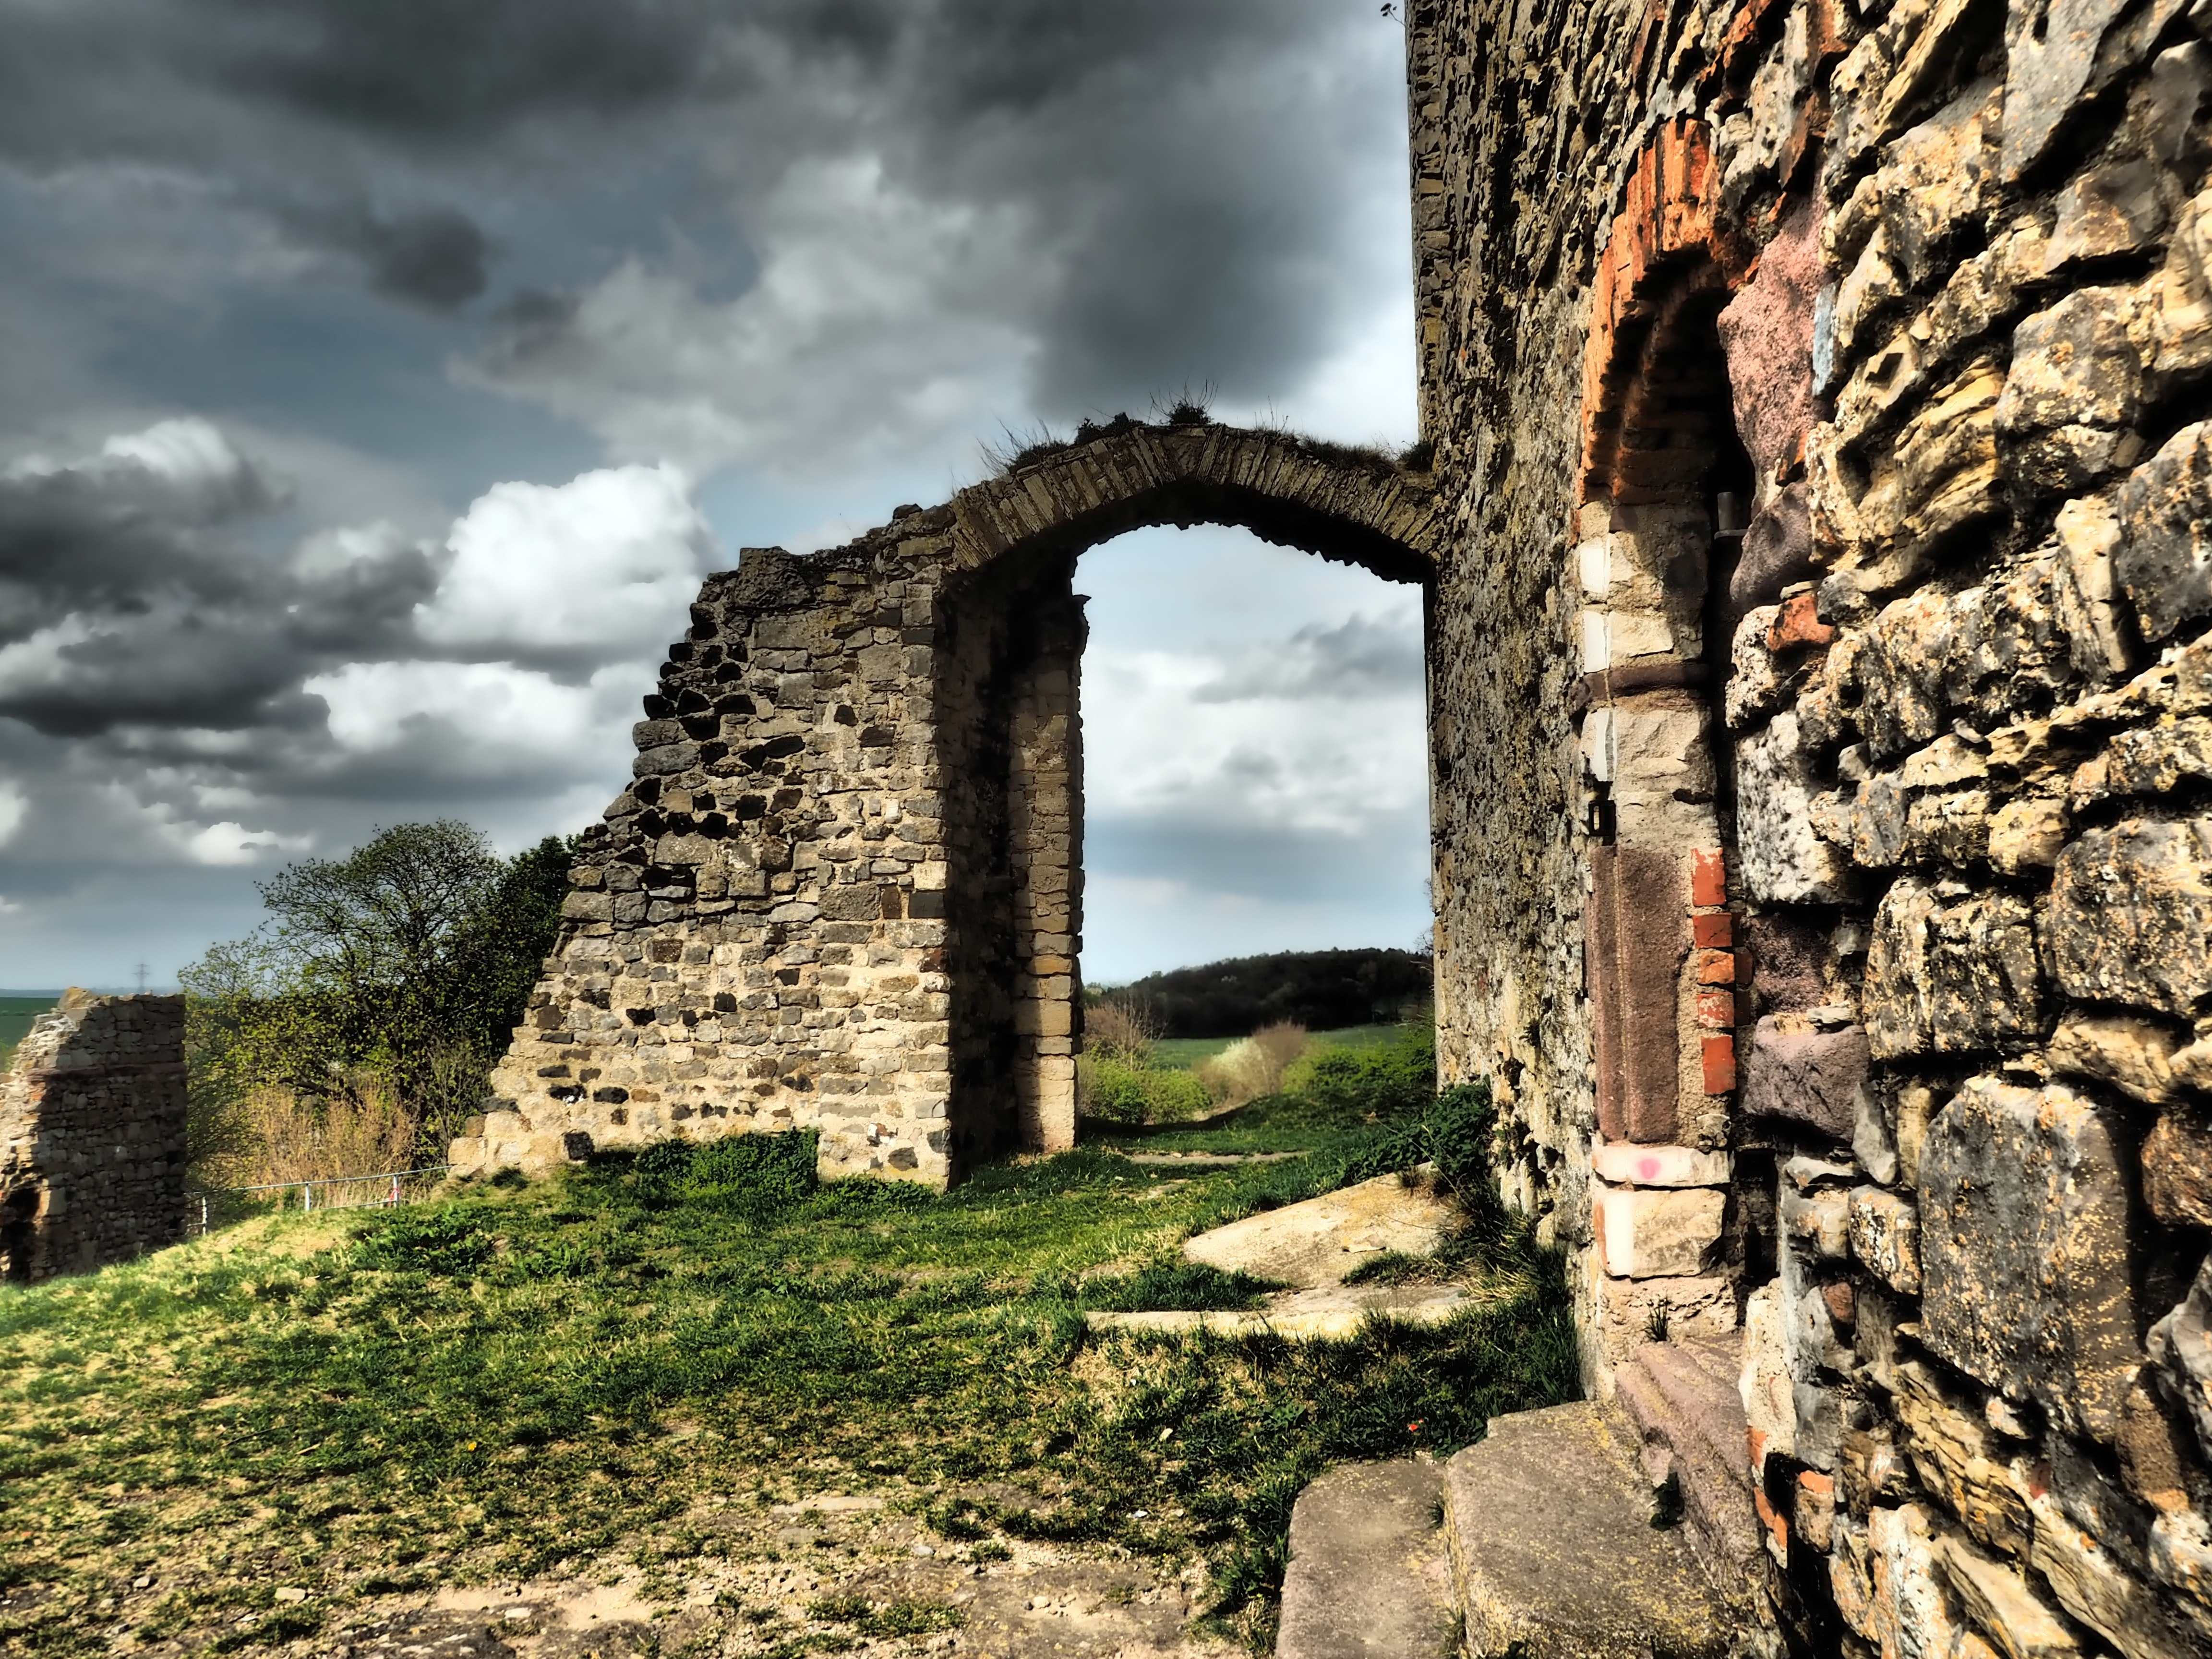 Brown Grey Brick Old Building, Recovery, Panorama, Meadow, Religion, HQ Photo